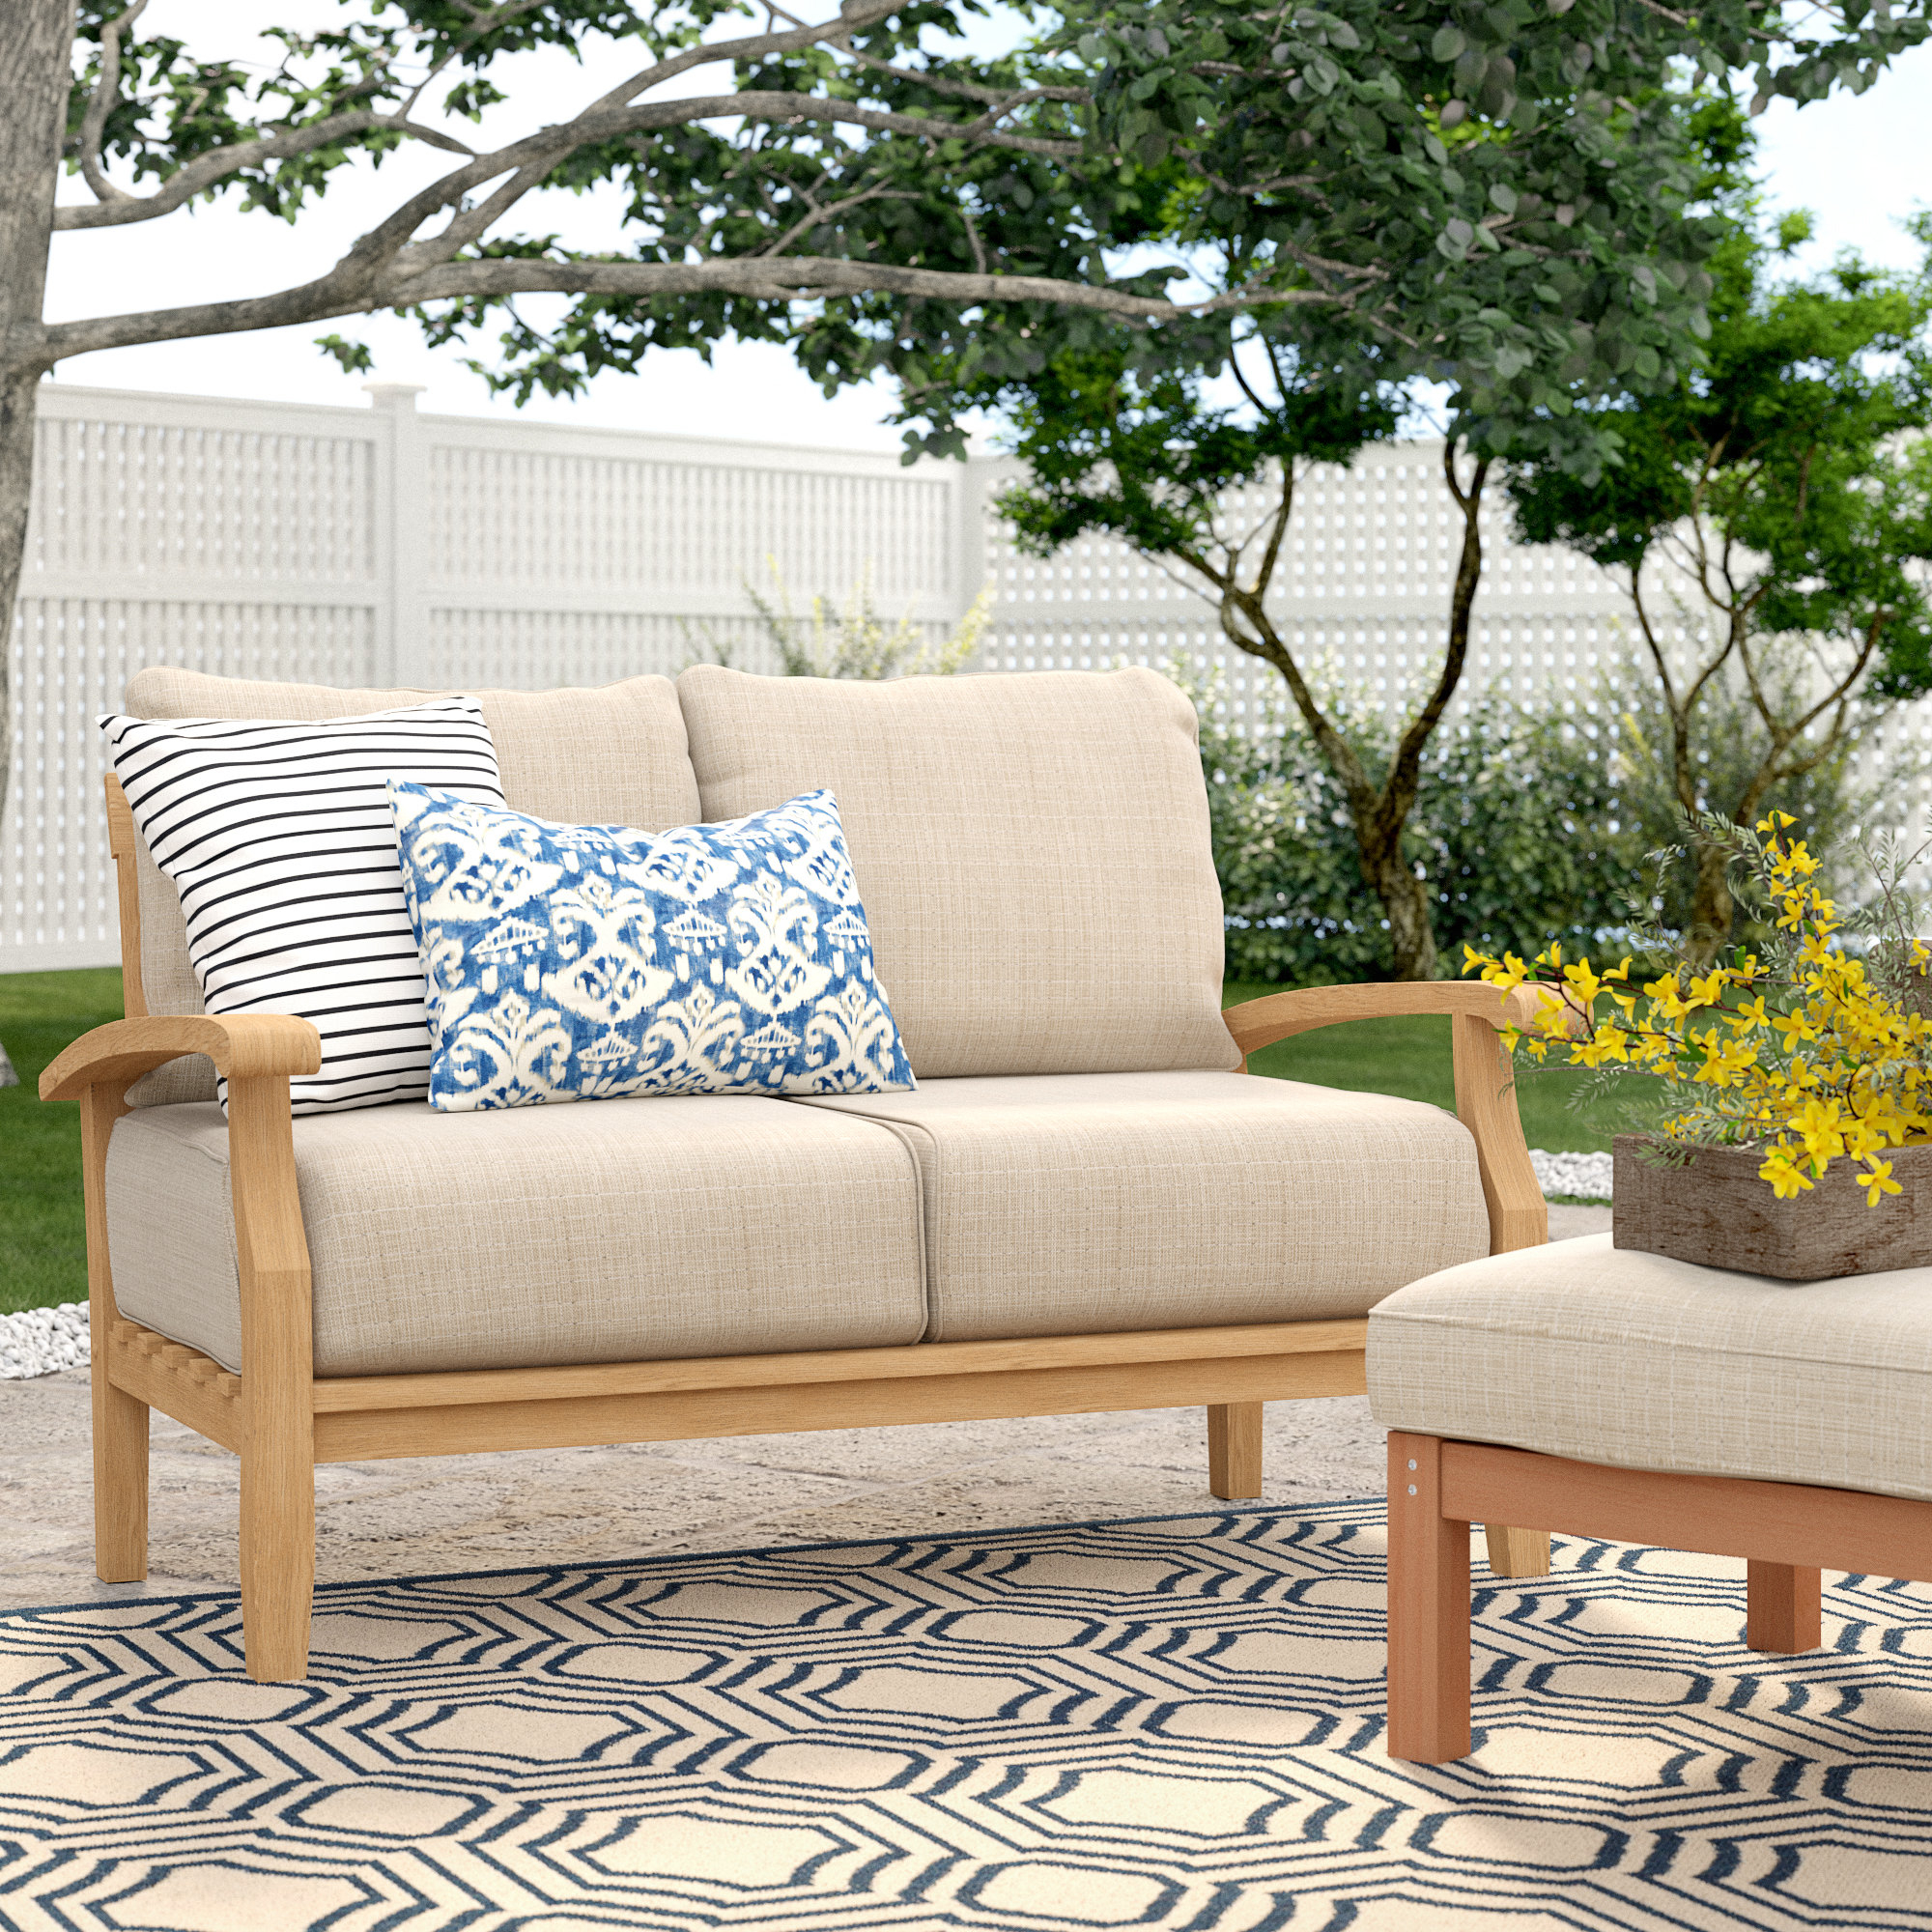 Well Known Summerton Teak Loveseat With Cushions With Regard To Summerton Teak Loveseats With Cushions (View 1 of 20)